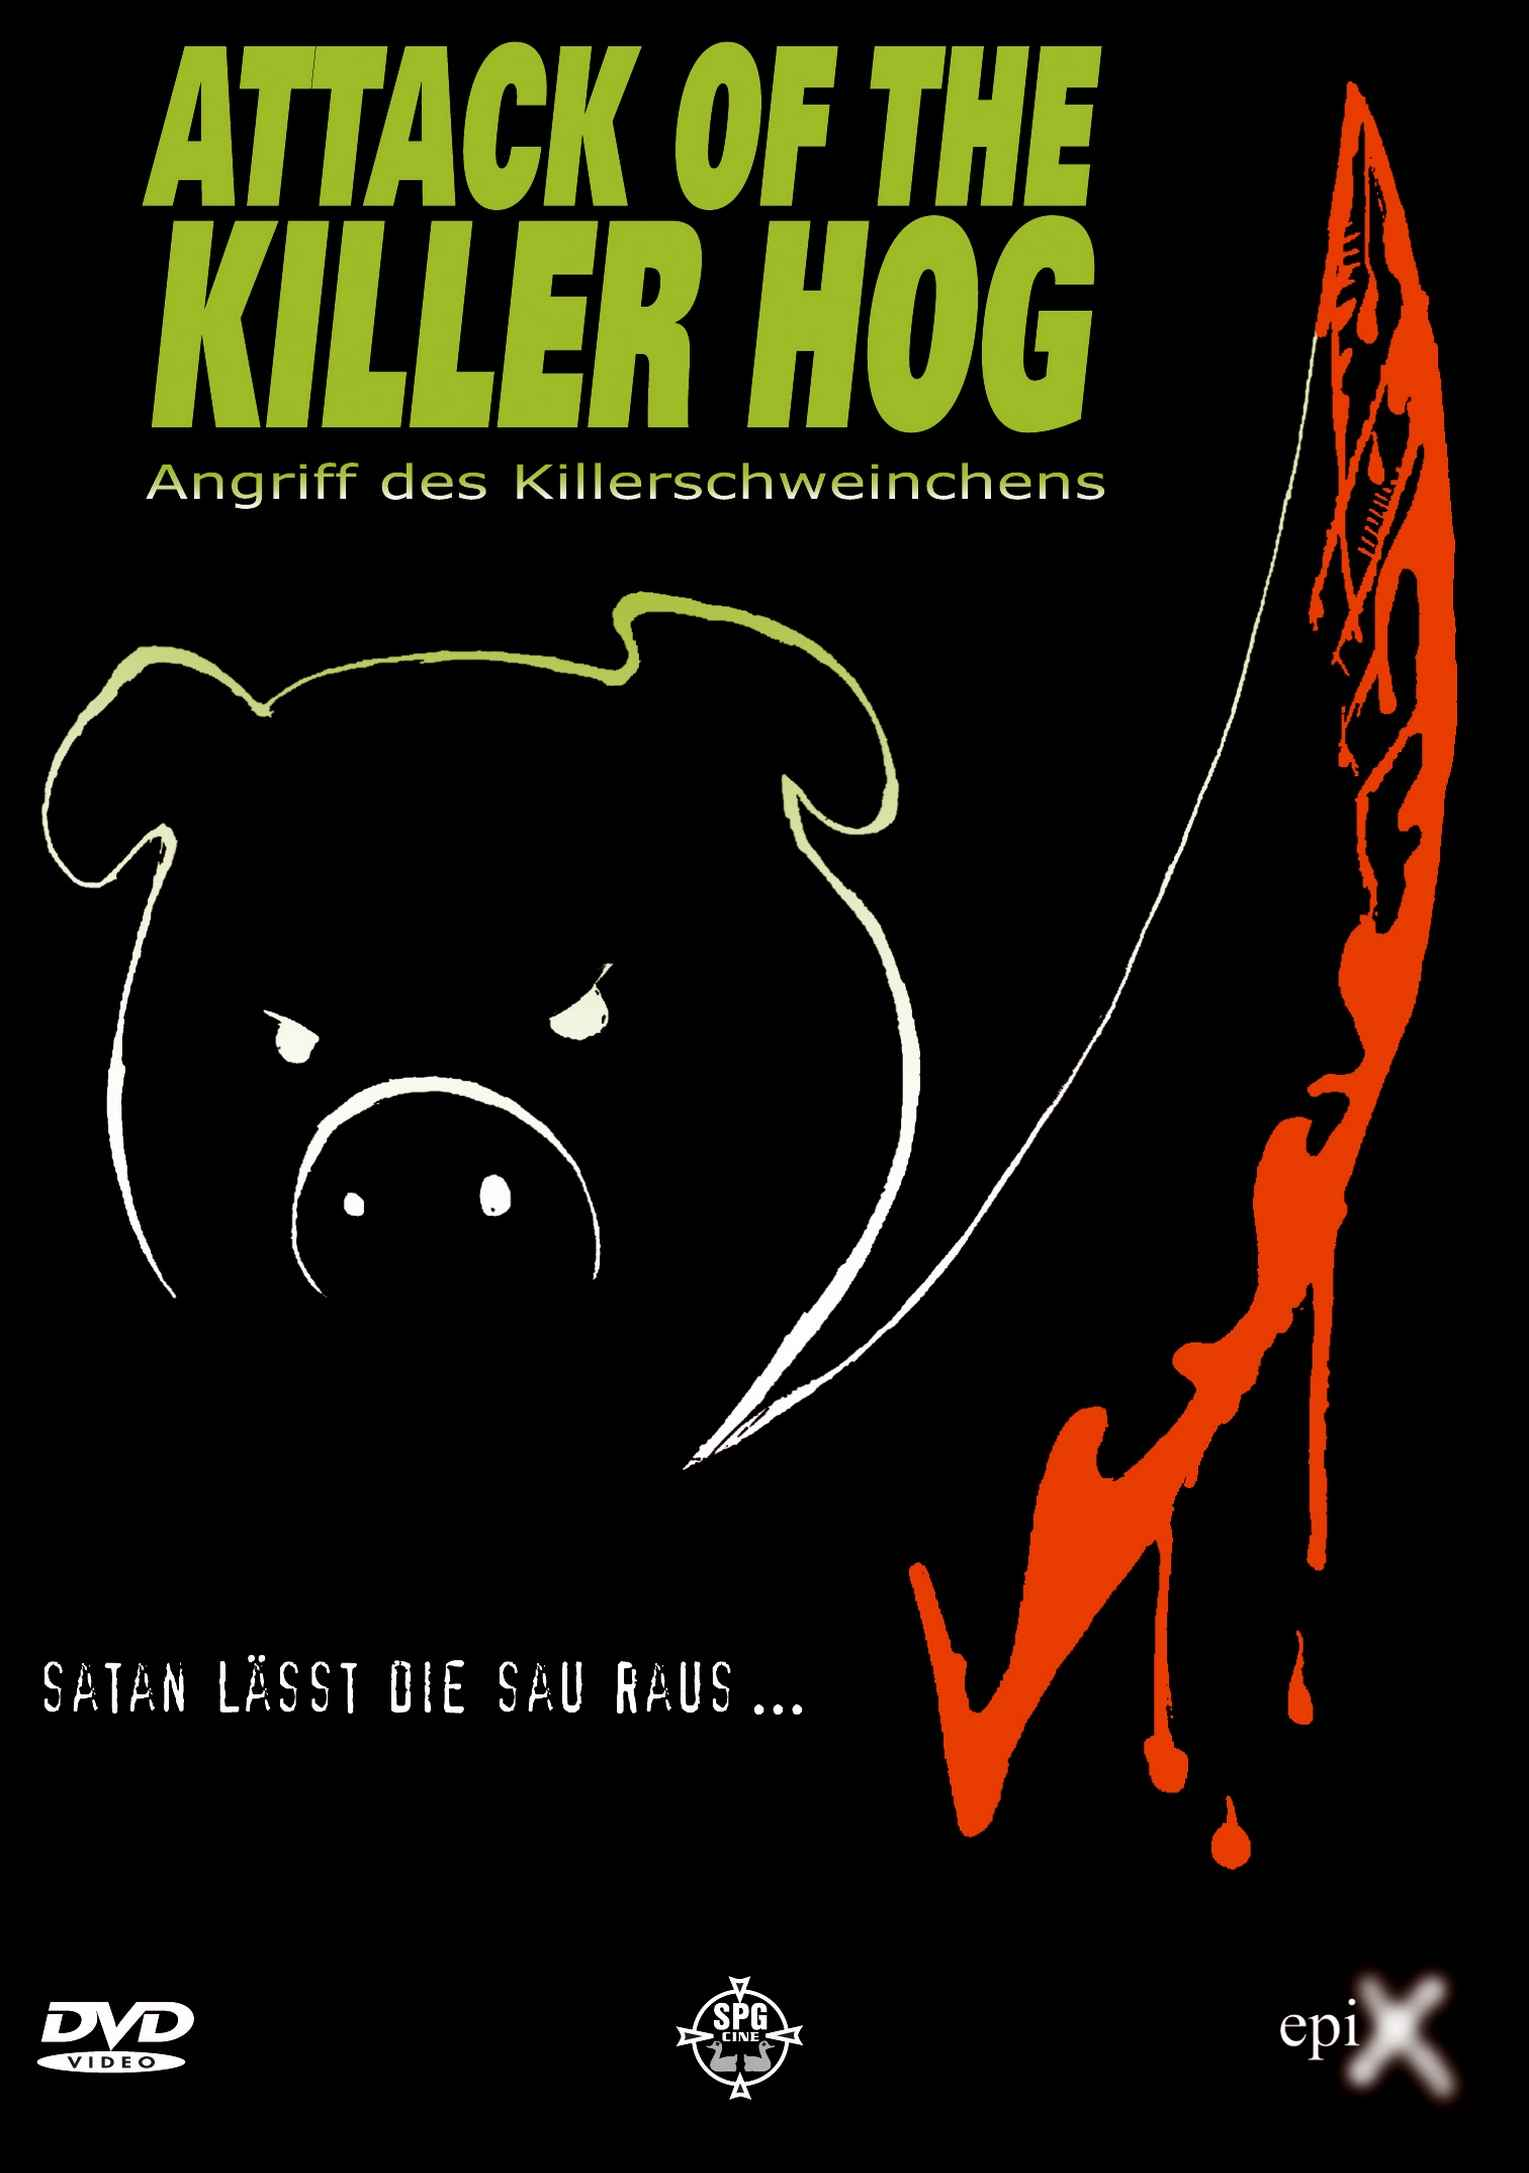 Killerhog-DVD_Cover-22110 Front